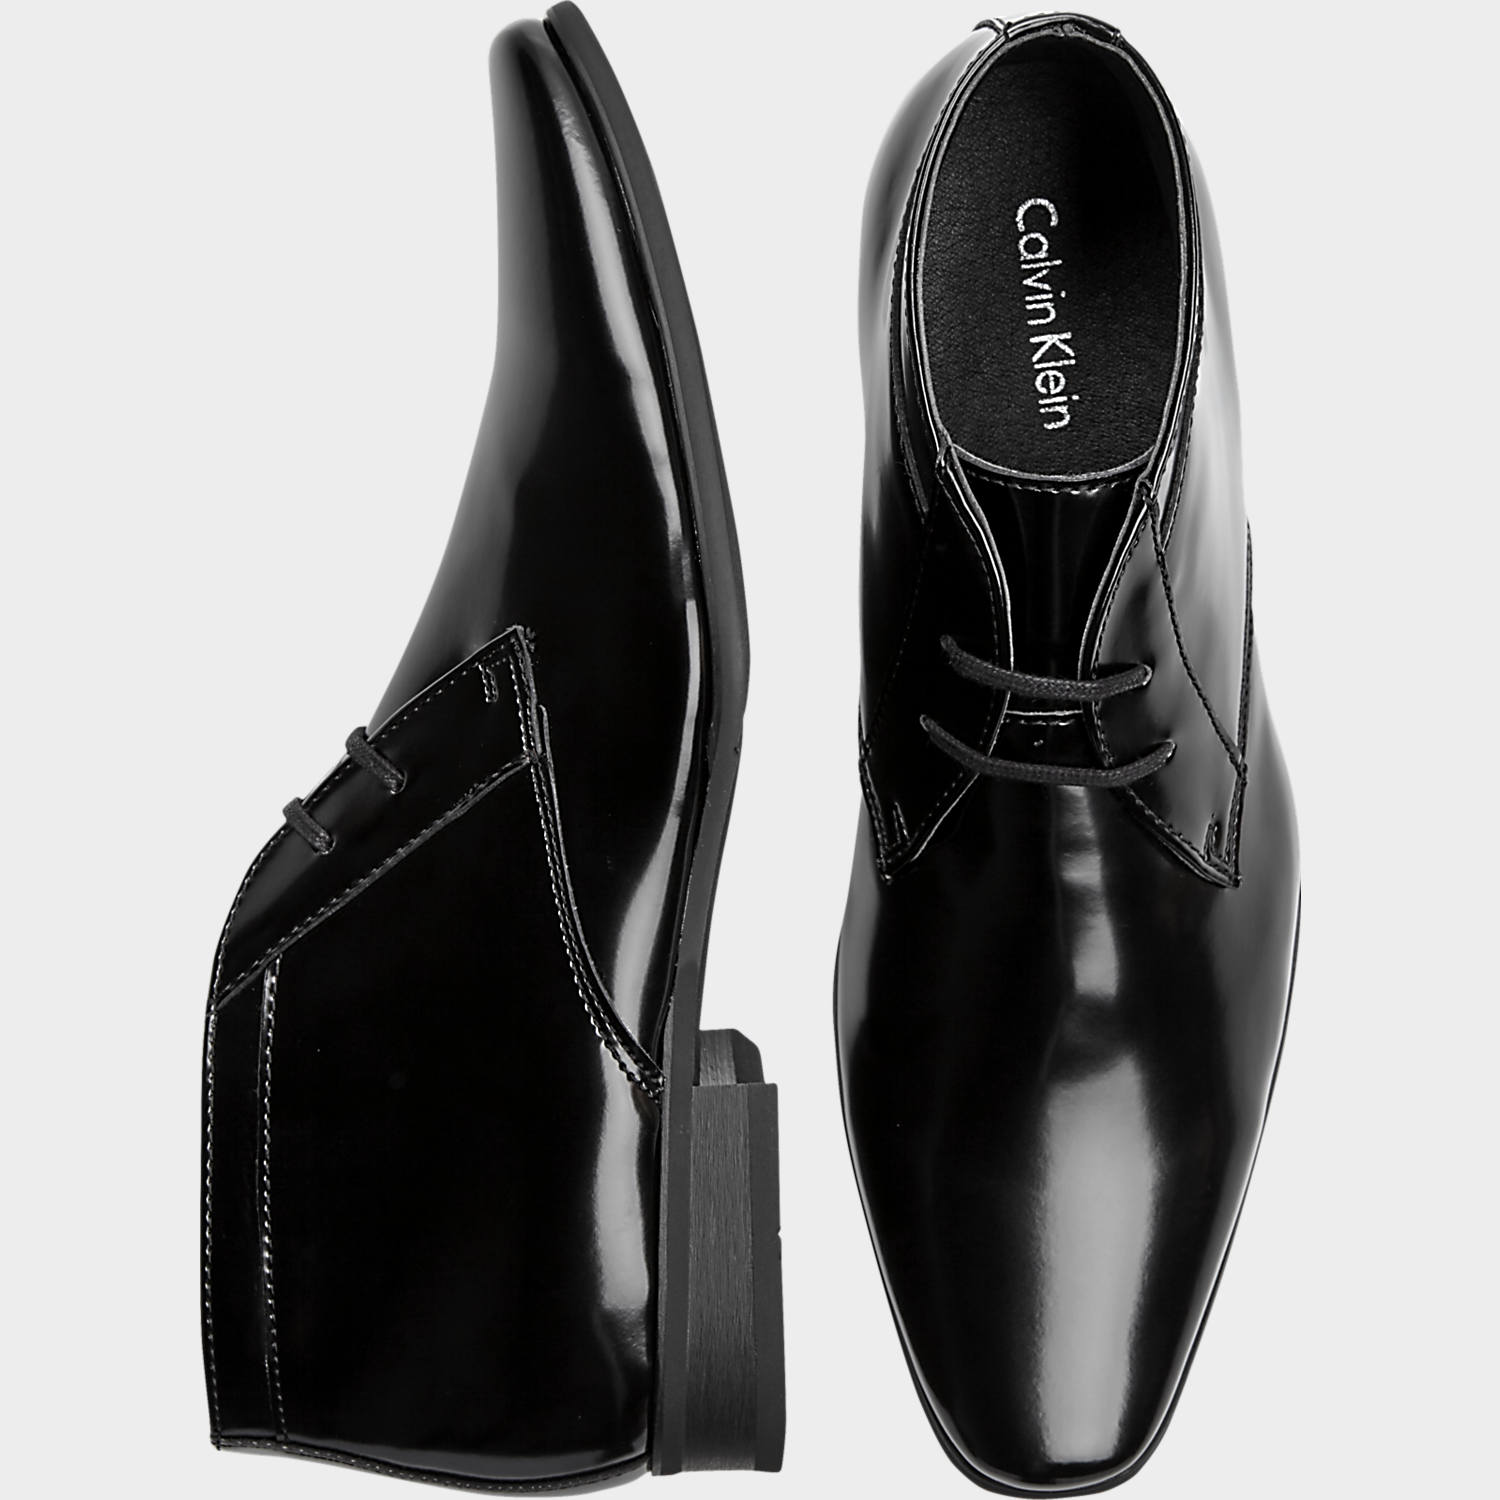 mens formal shoes mens tuxedo formal shoes, shoes - calvin klein ballard black tuxedo boot -  menu0027s GAGPHUN